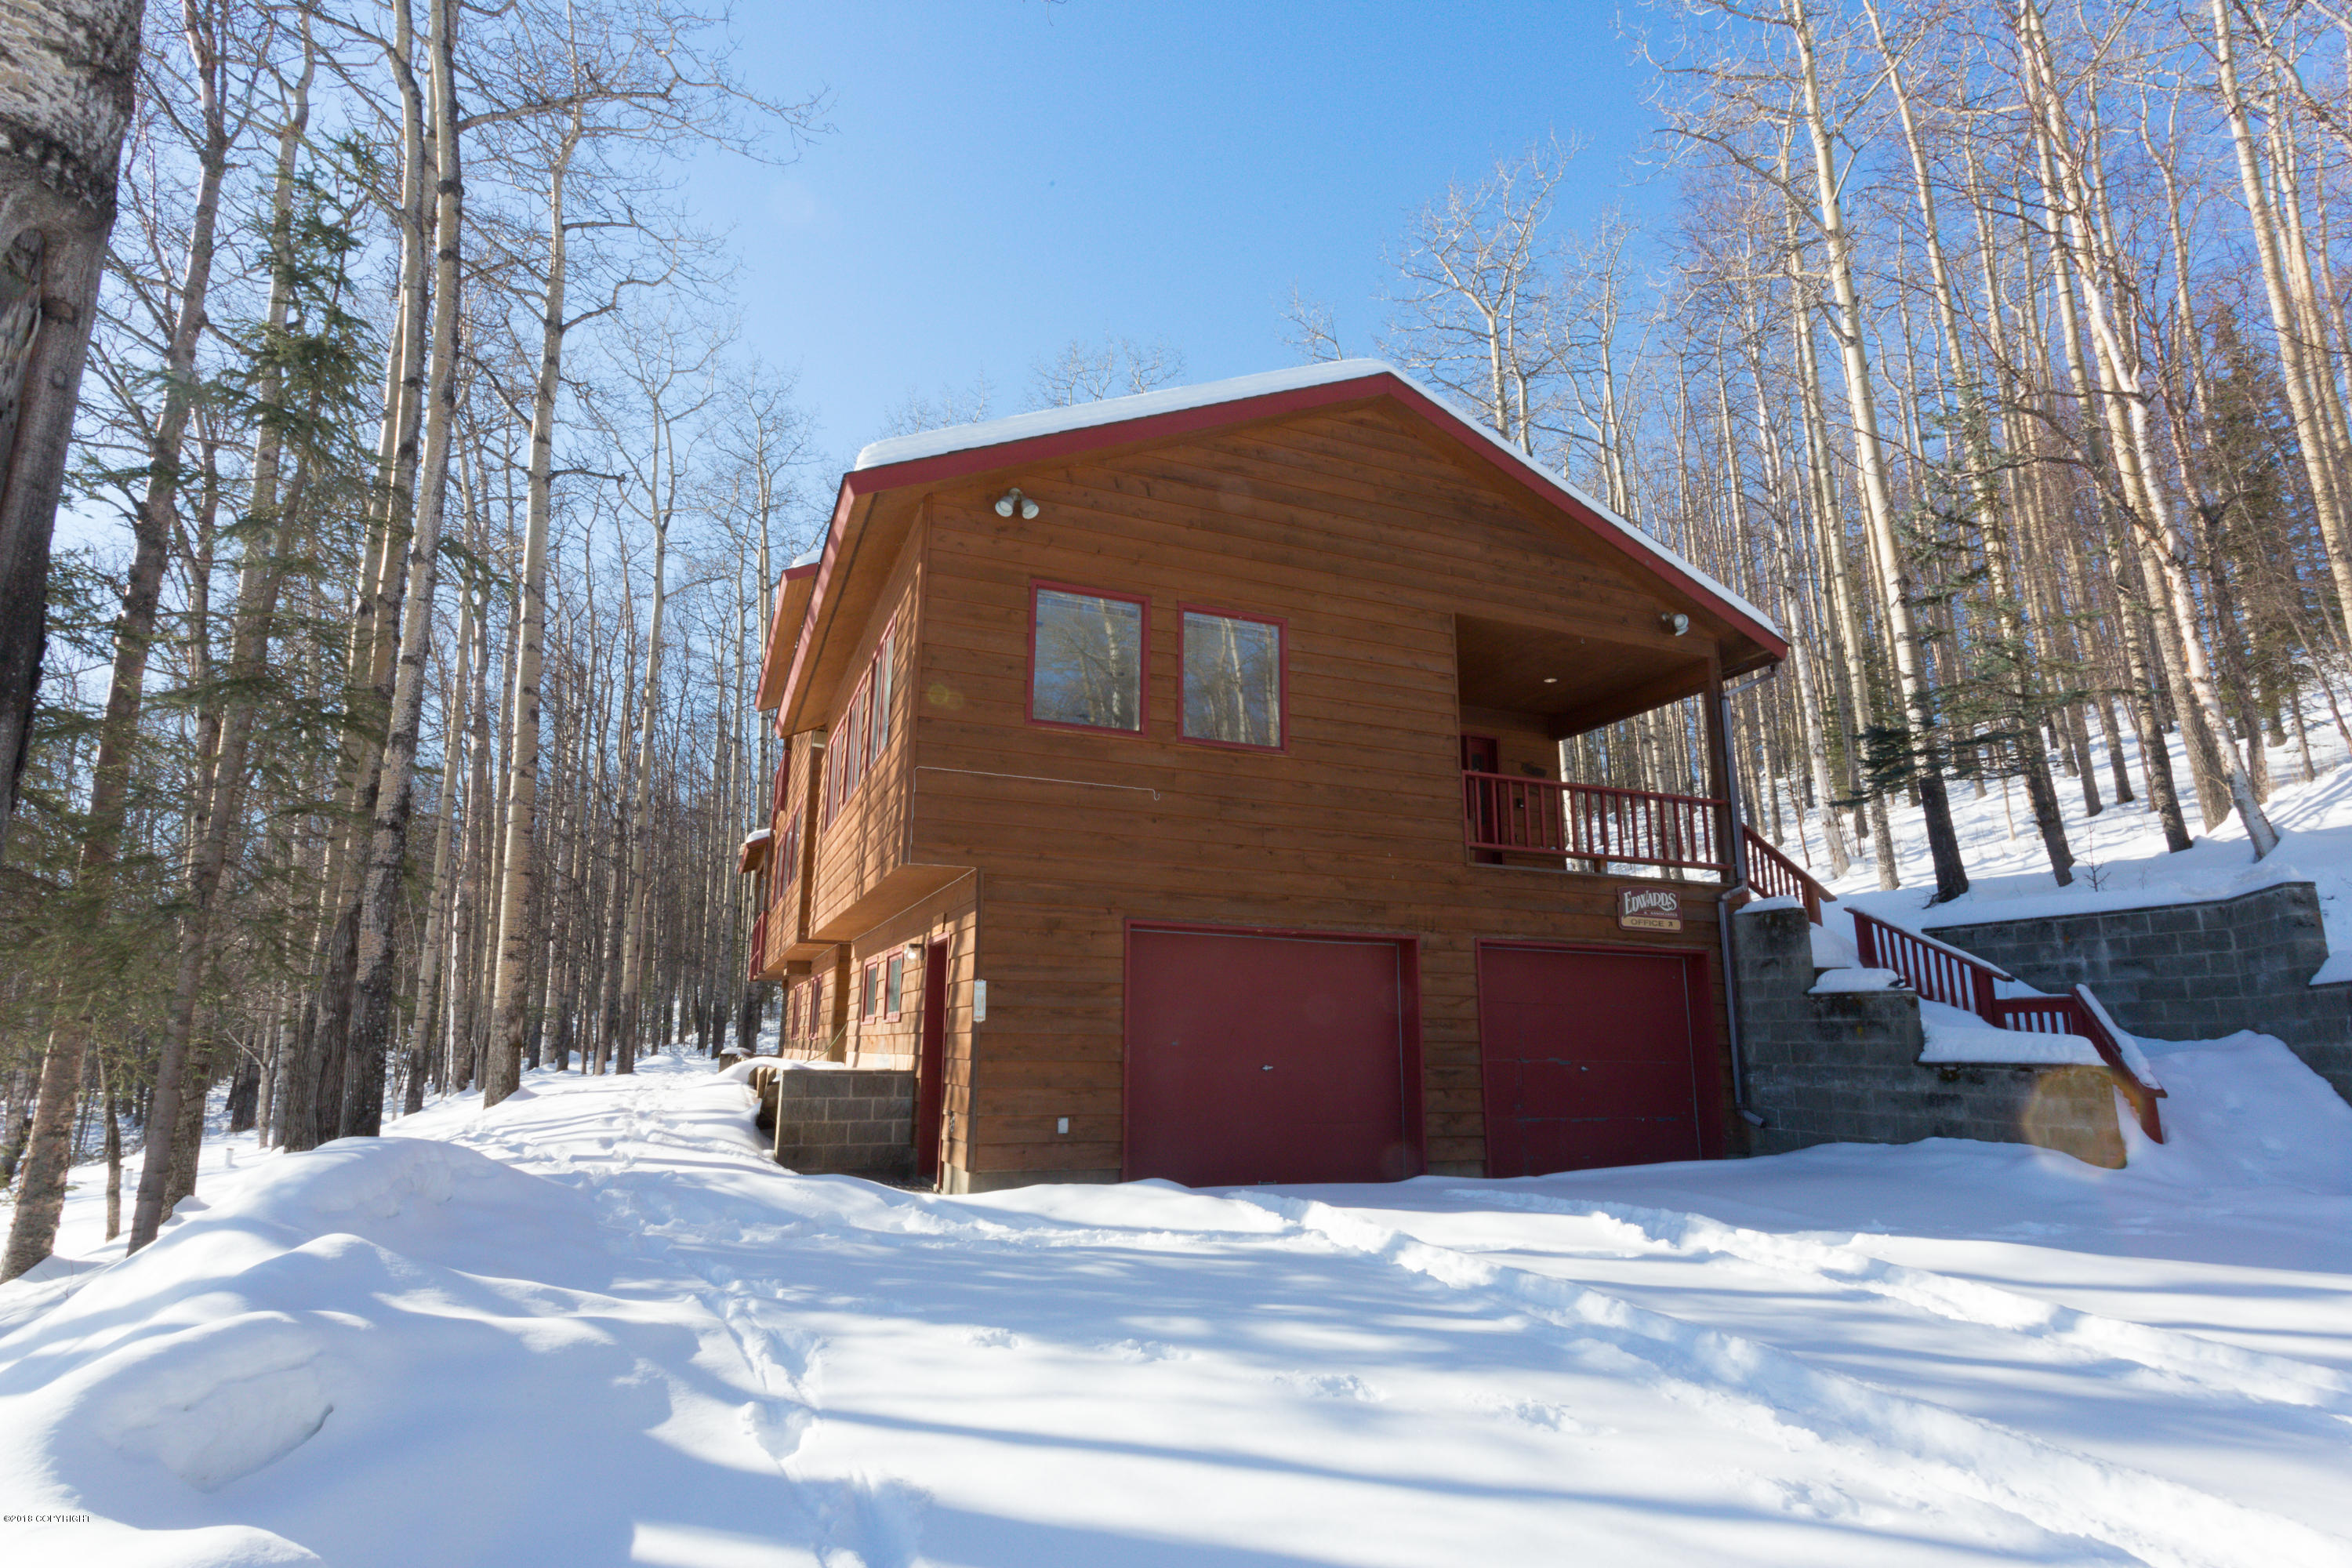 in at llc published alaska petersburg december for cabins properties img sale